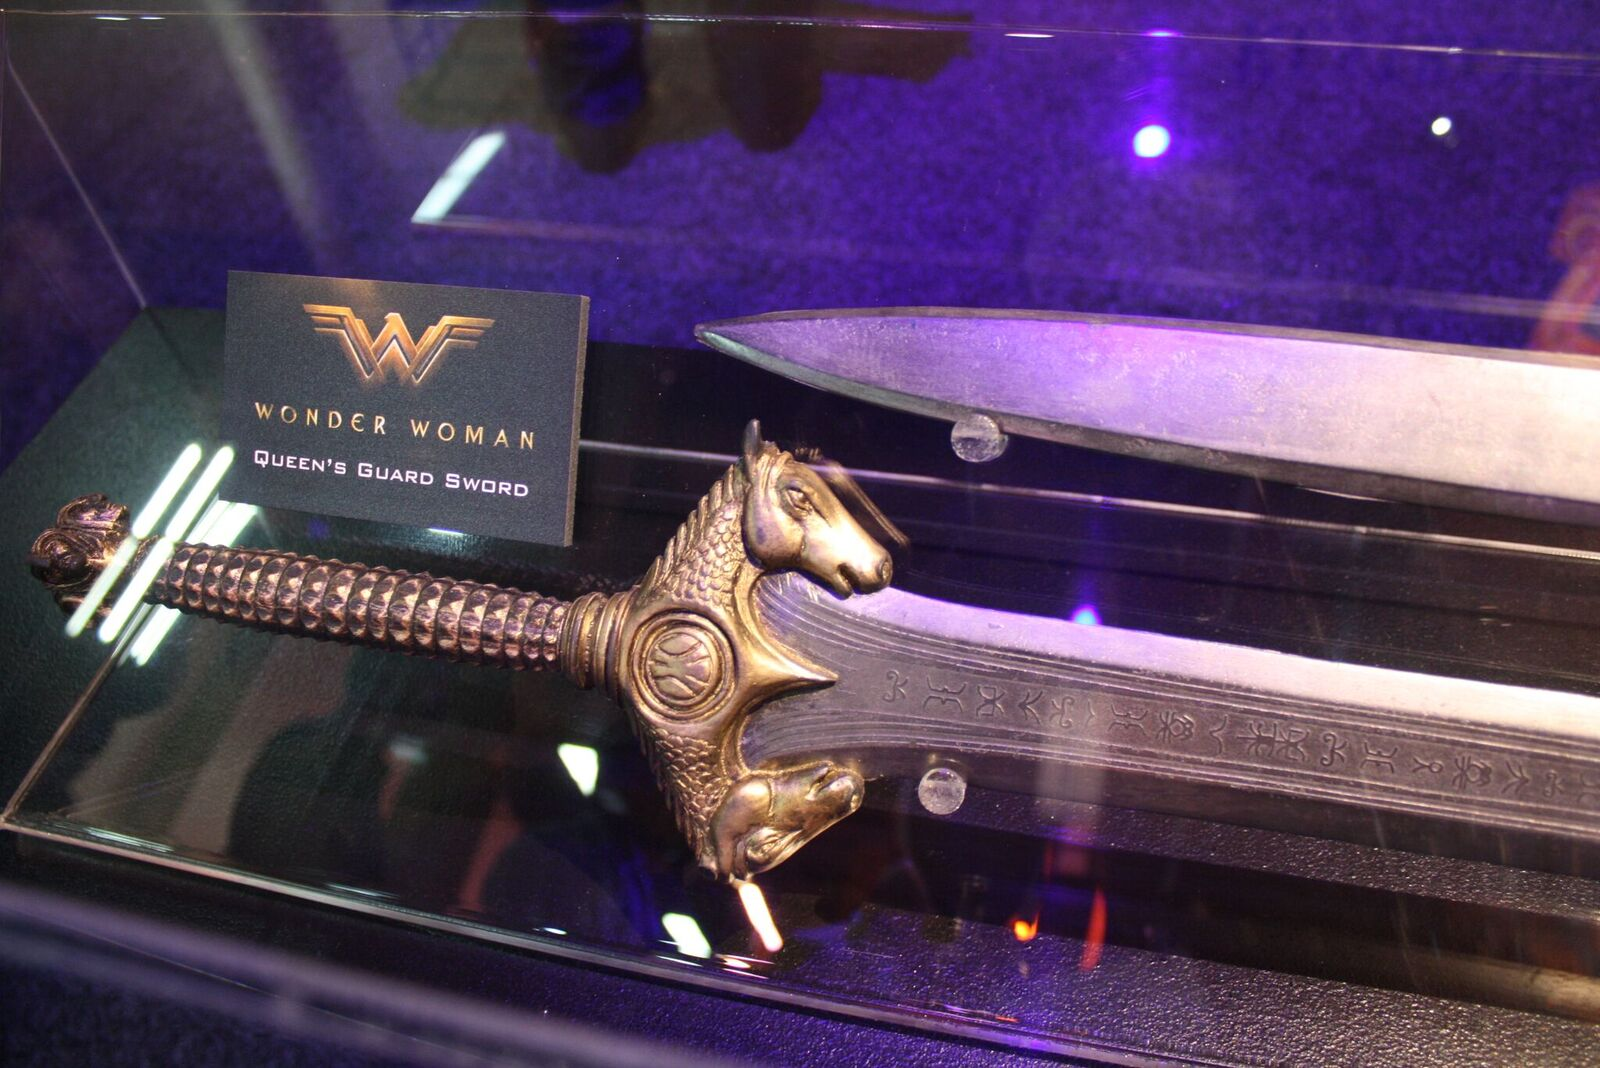 Wonder Woman Props u0026 Weapons Revealed At Licensing Expo ...